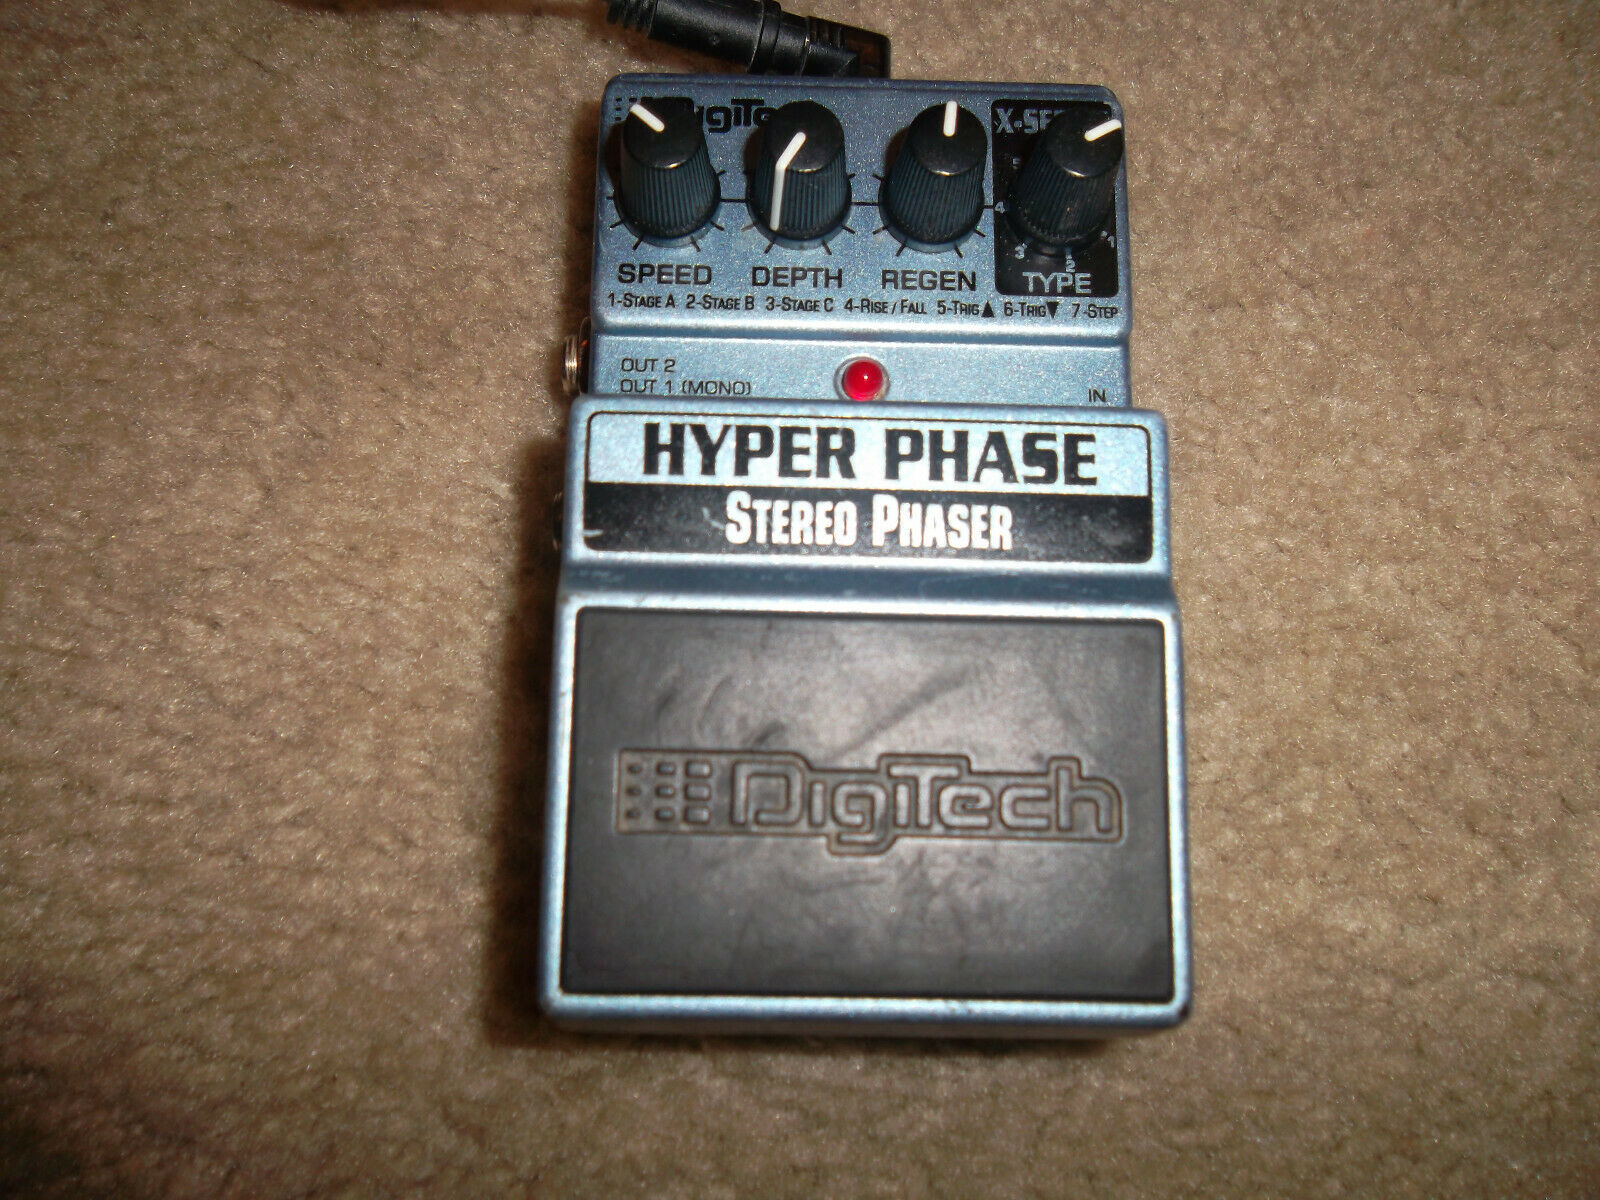 DigiTech X-Series HYPER PHASE STEREO PHASER Guitar Effects Pedal - $25.00